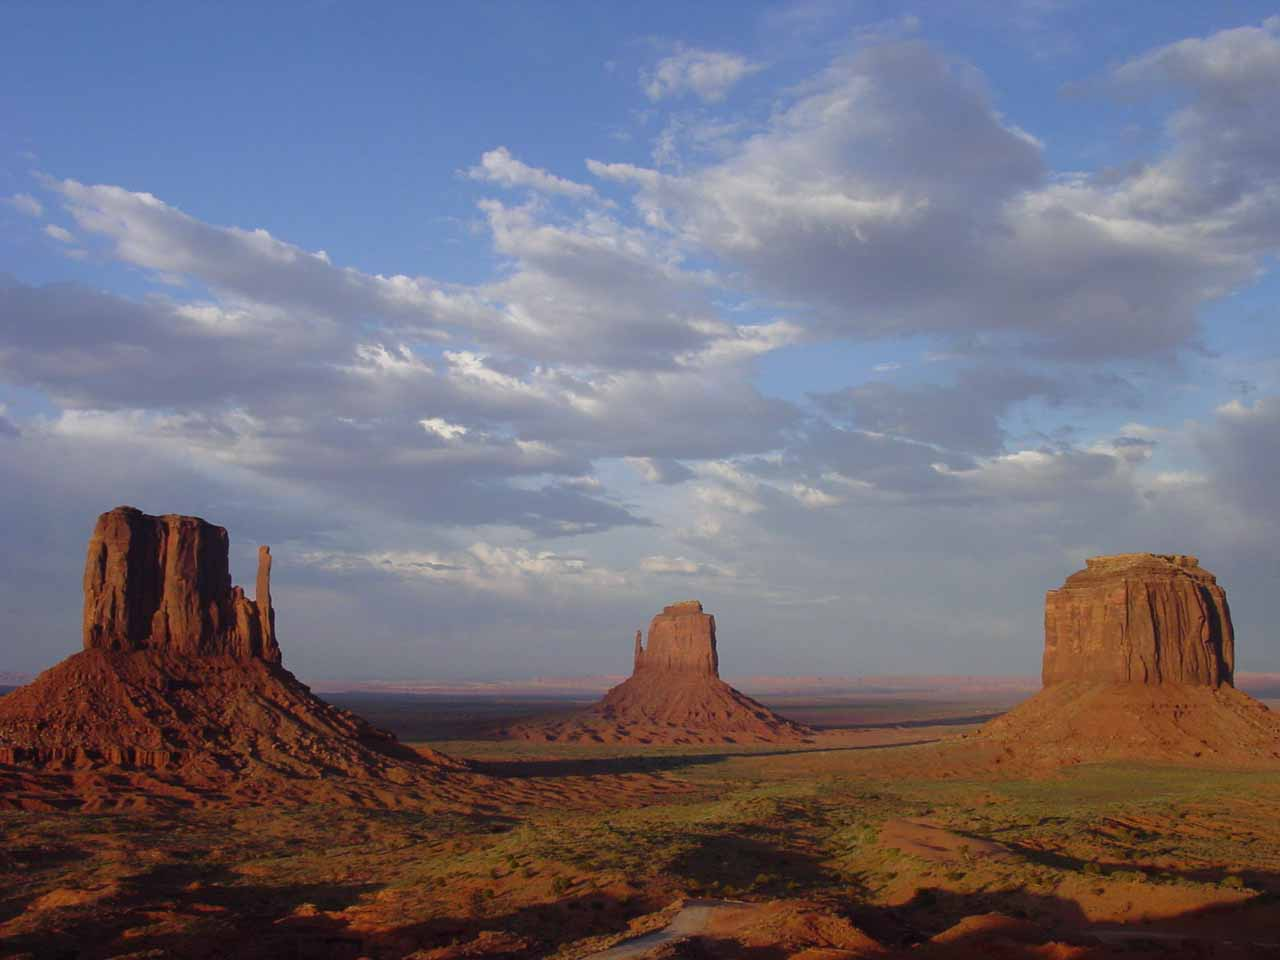 Late afternoon at Monument Valley